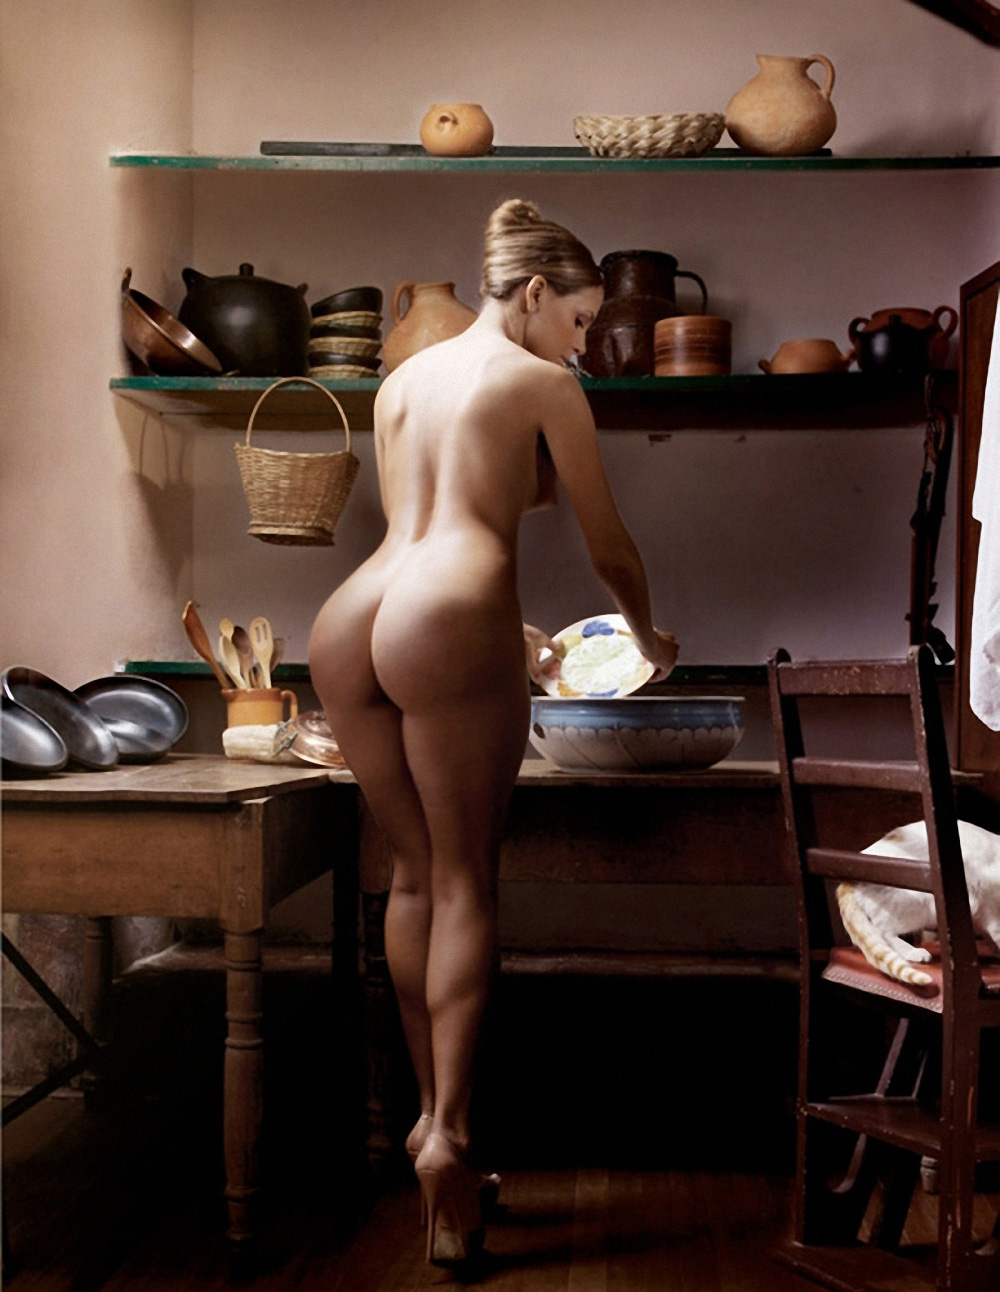 For support. Big butt girl naked in the kitchen will not